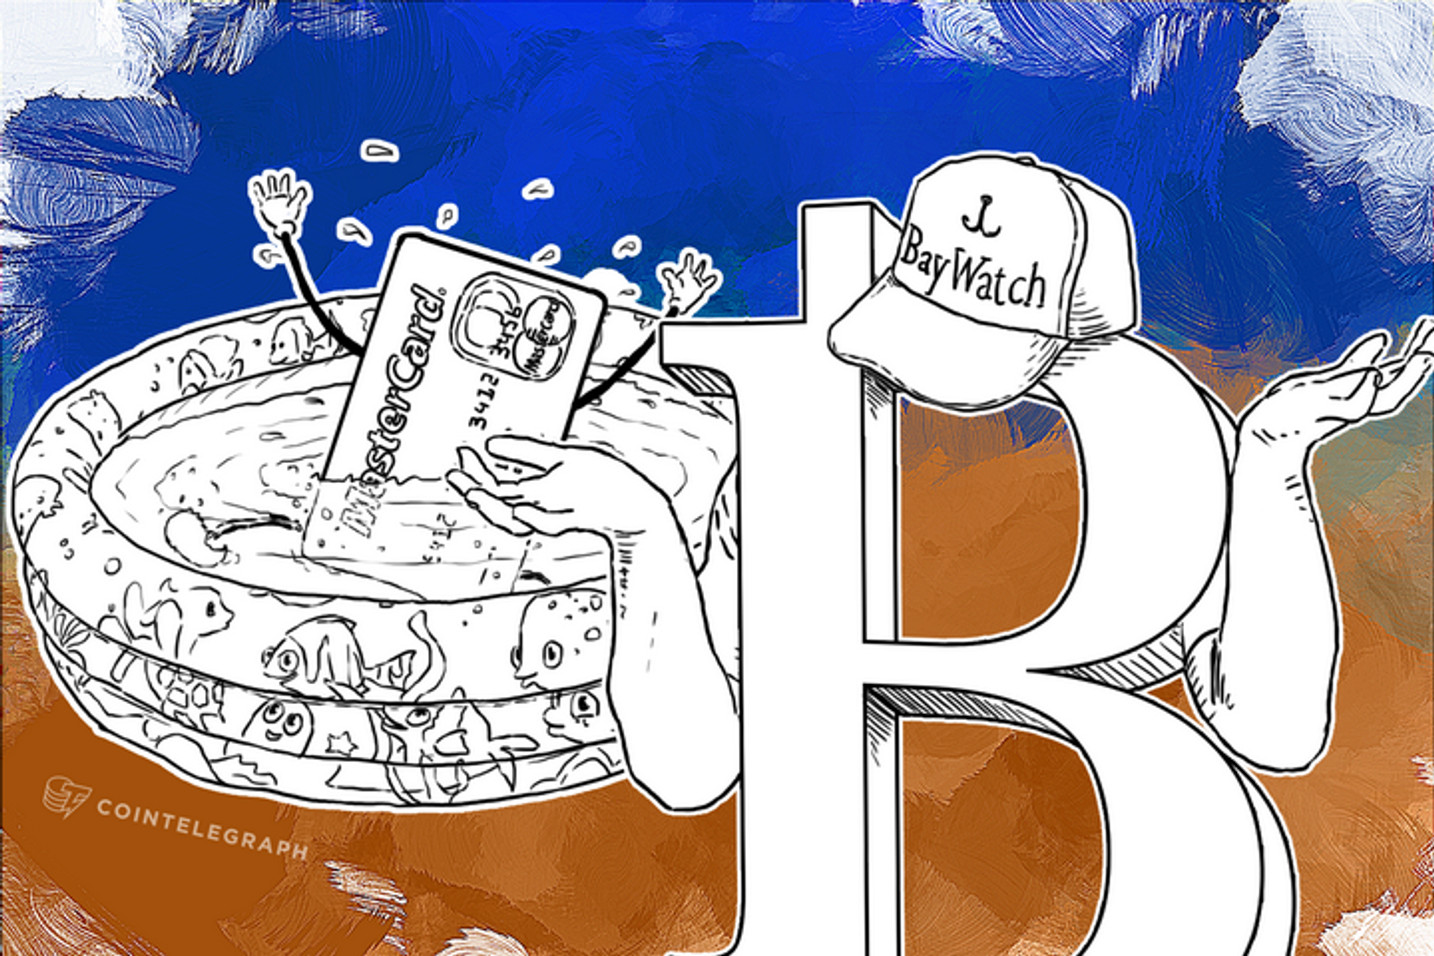 MasterCard in Panic over Bitcoin: Drowns in the Shallow End of Pool (Op-ed)